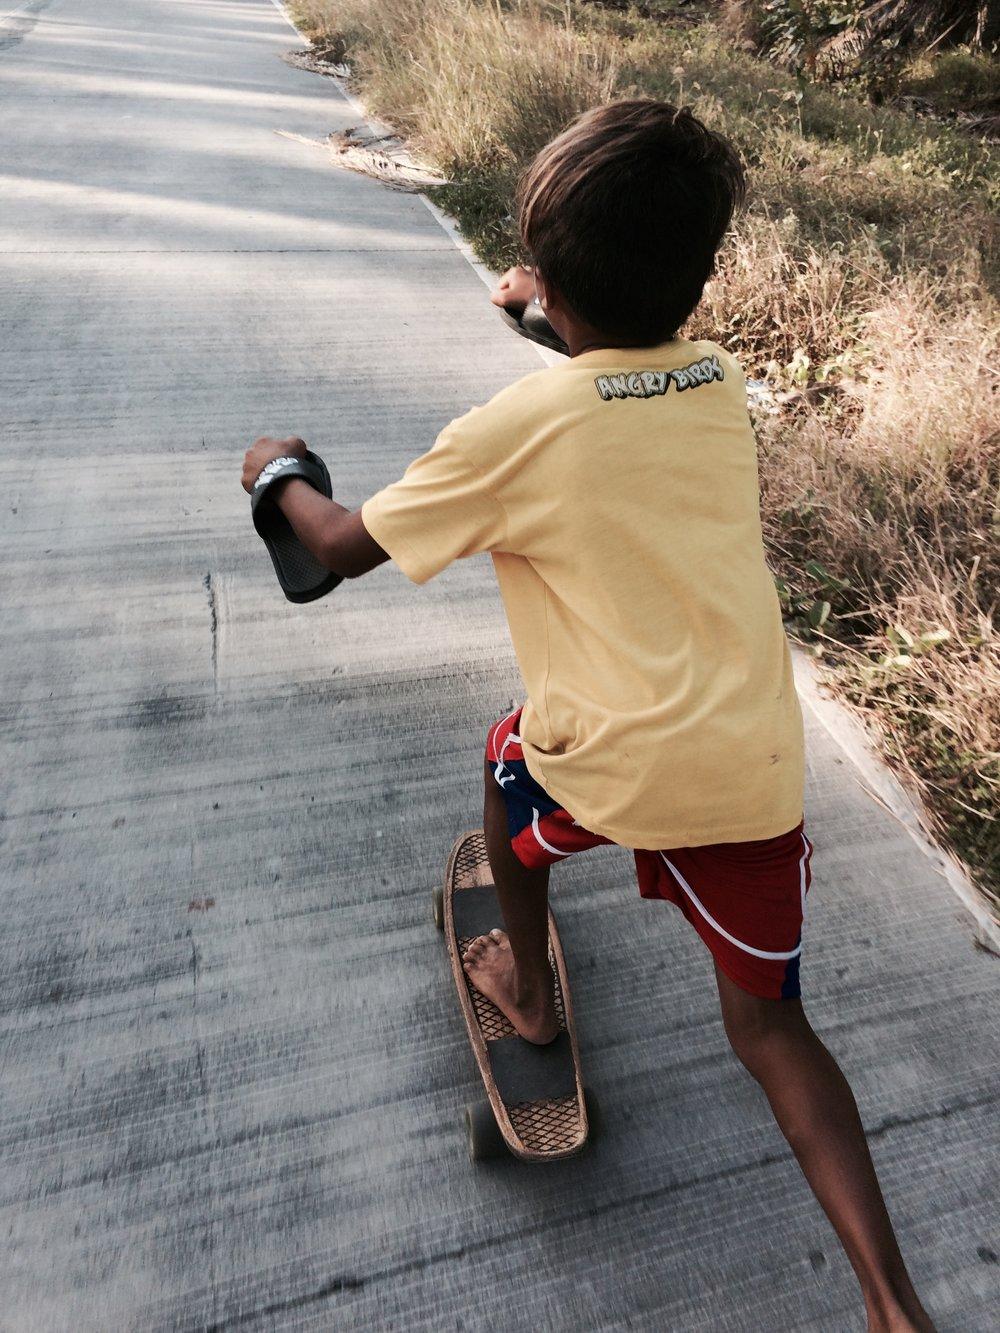 Kids have it so easy. Start them young and they'll learn every trick there is before I could even learn to slide. Photo by Cheen.